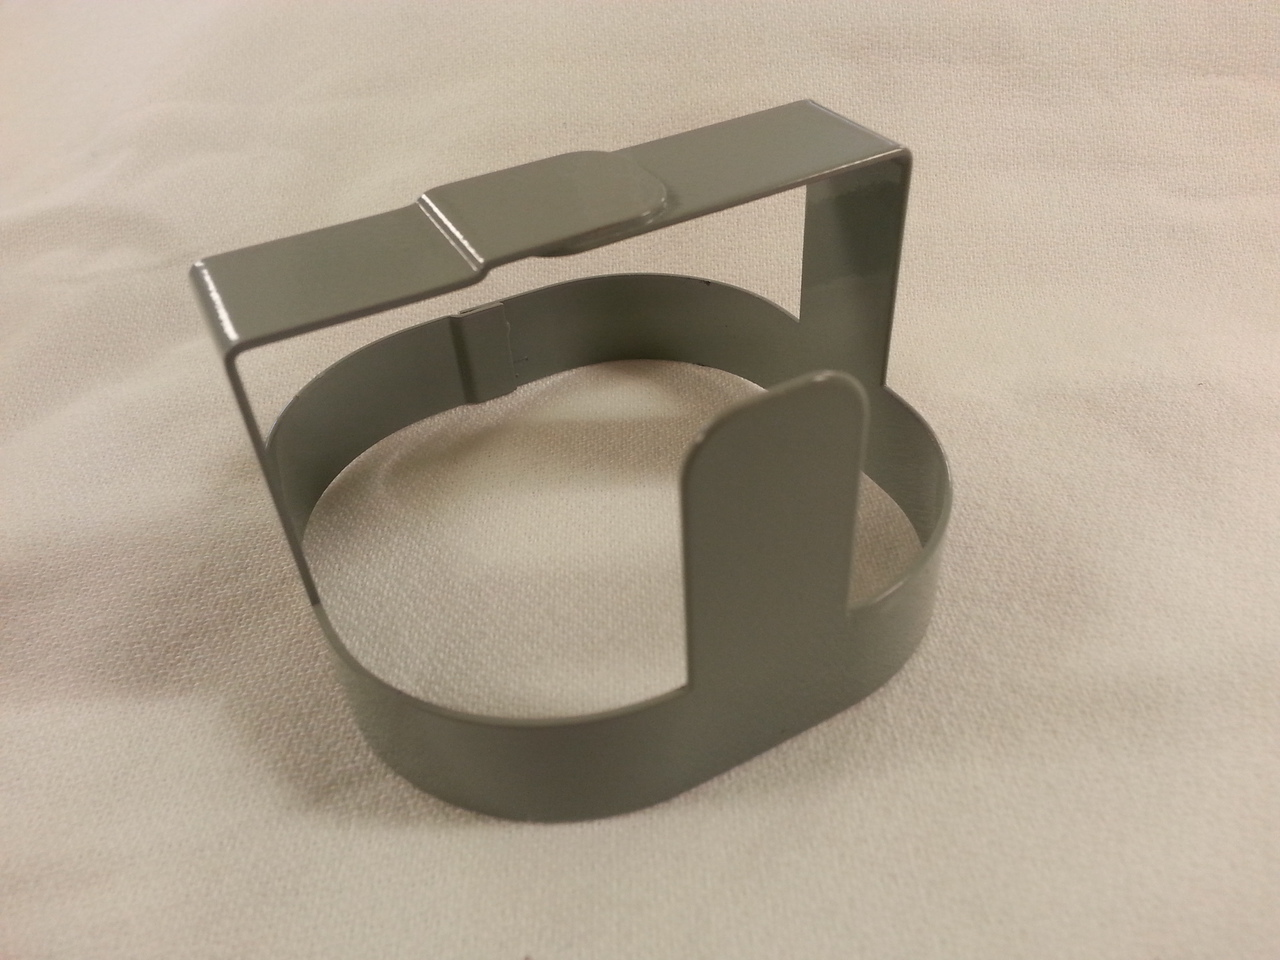 Focus Ring For Cambium 5 8 Ghz Products